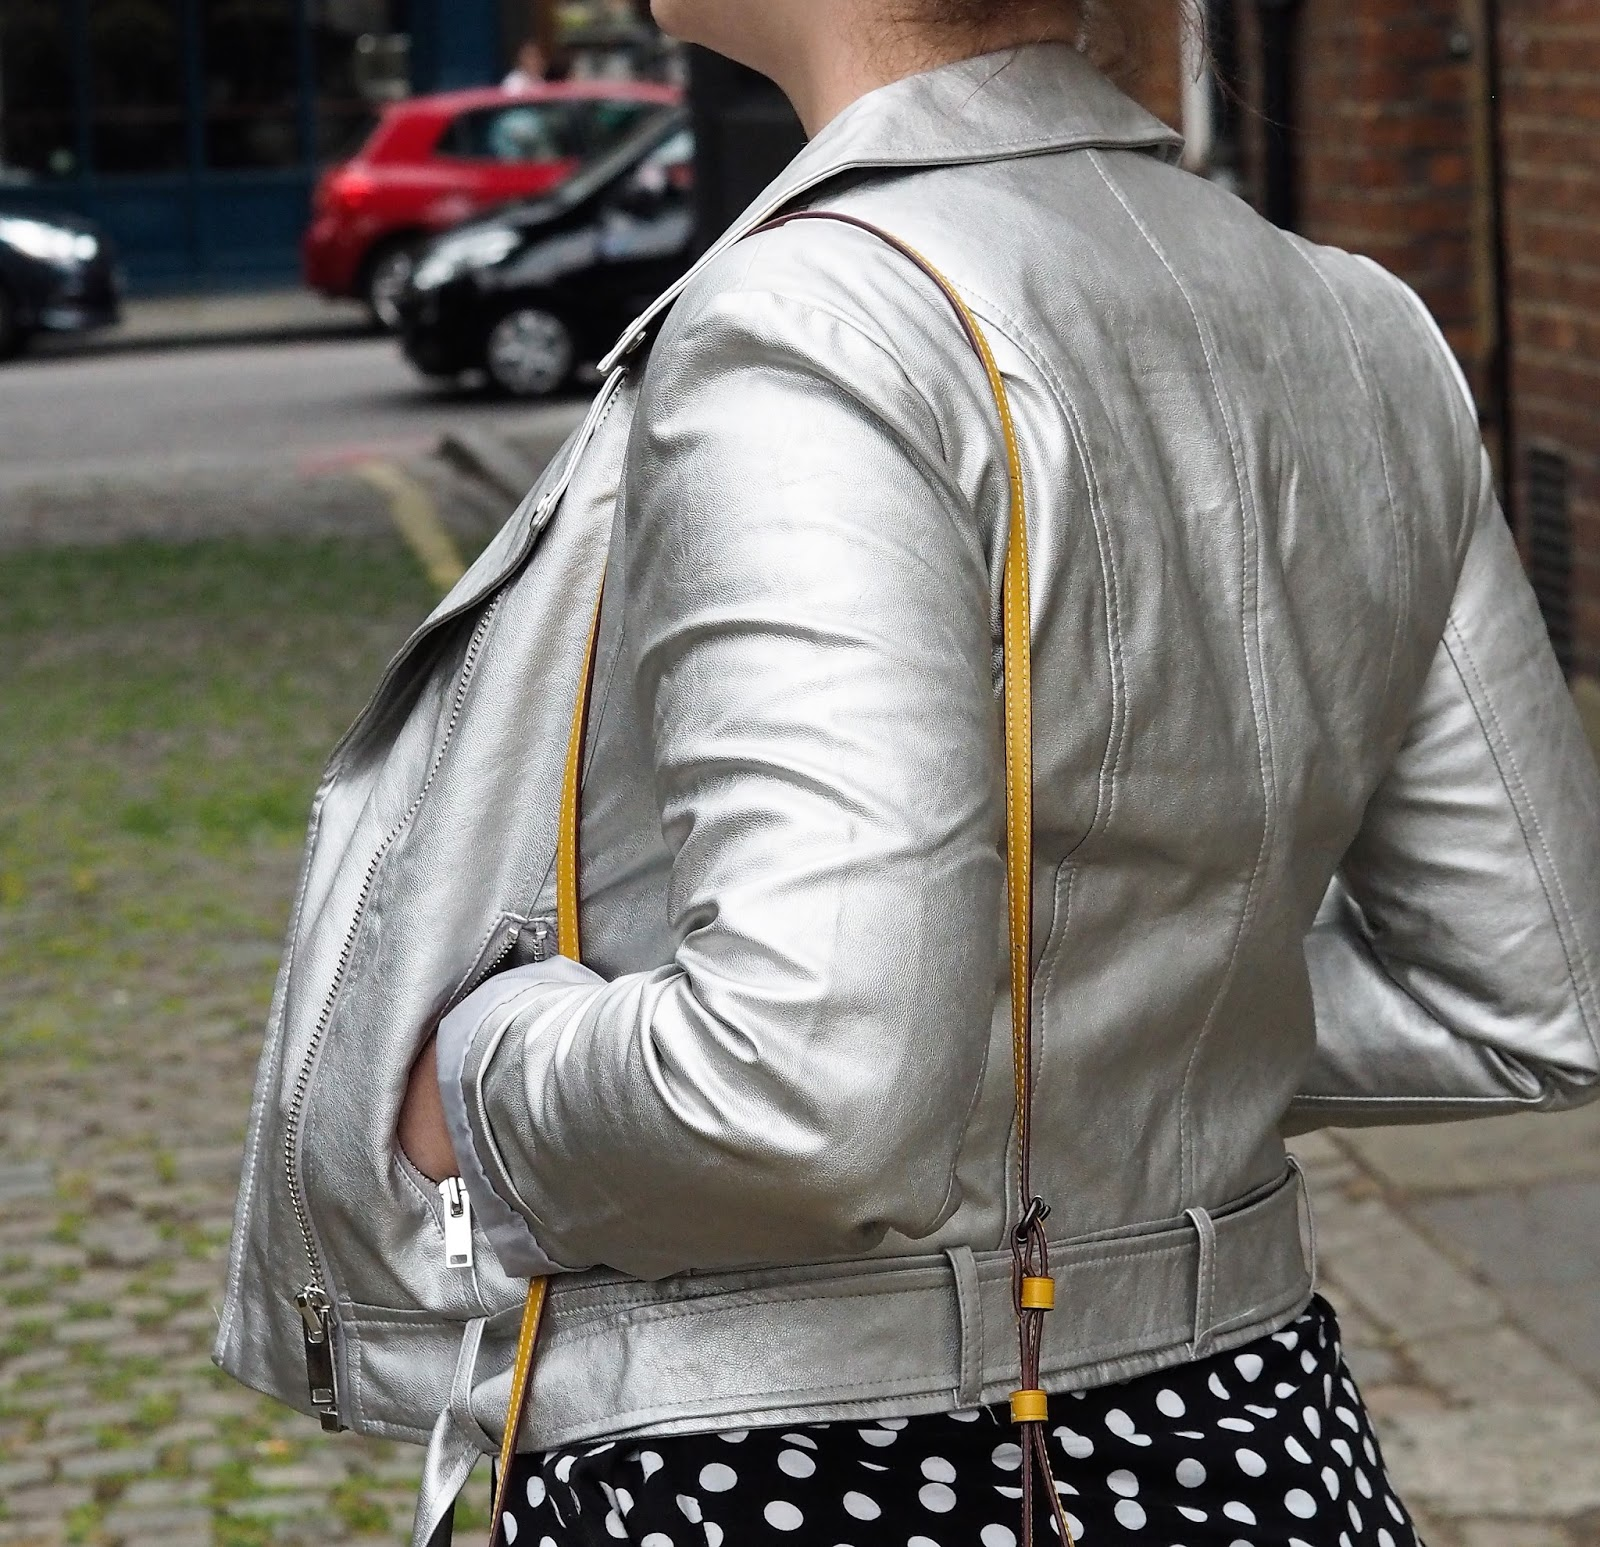 55070ea02 buy and wear a metallic leather jacket and get your friends to take photos  of you in a random north london back alley while onlookers walk past. job  done. ...